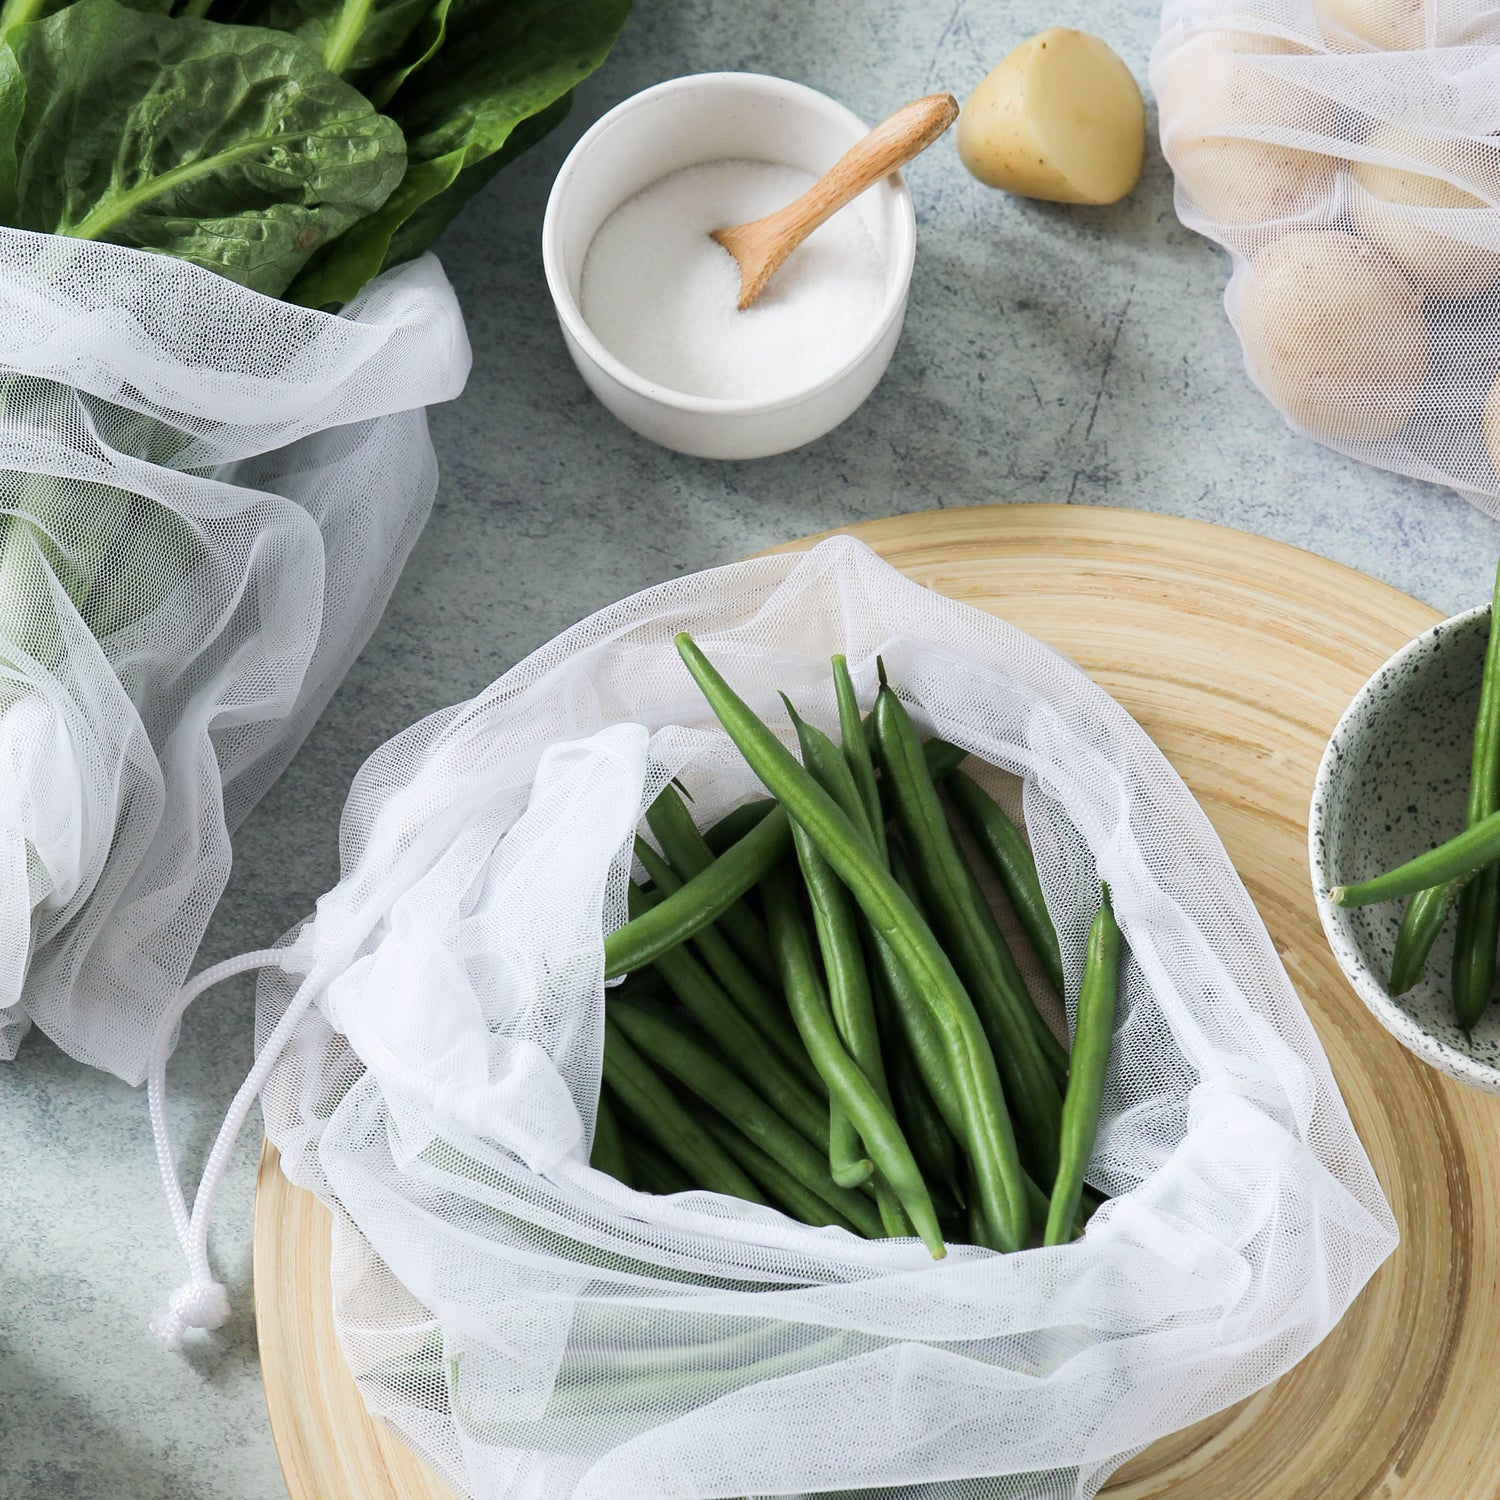 Reusable Produce Bags RPET Mesh 4 Pack